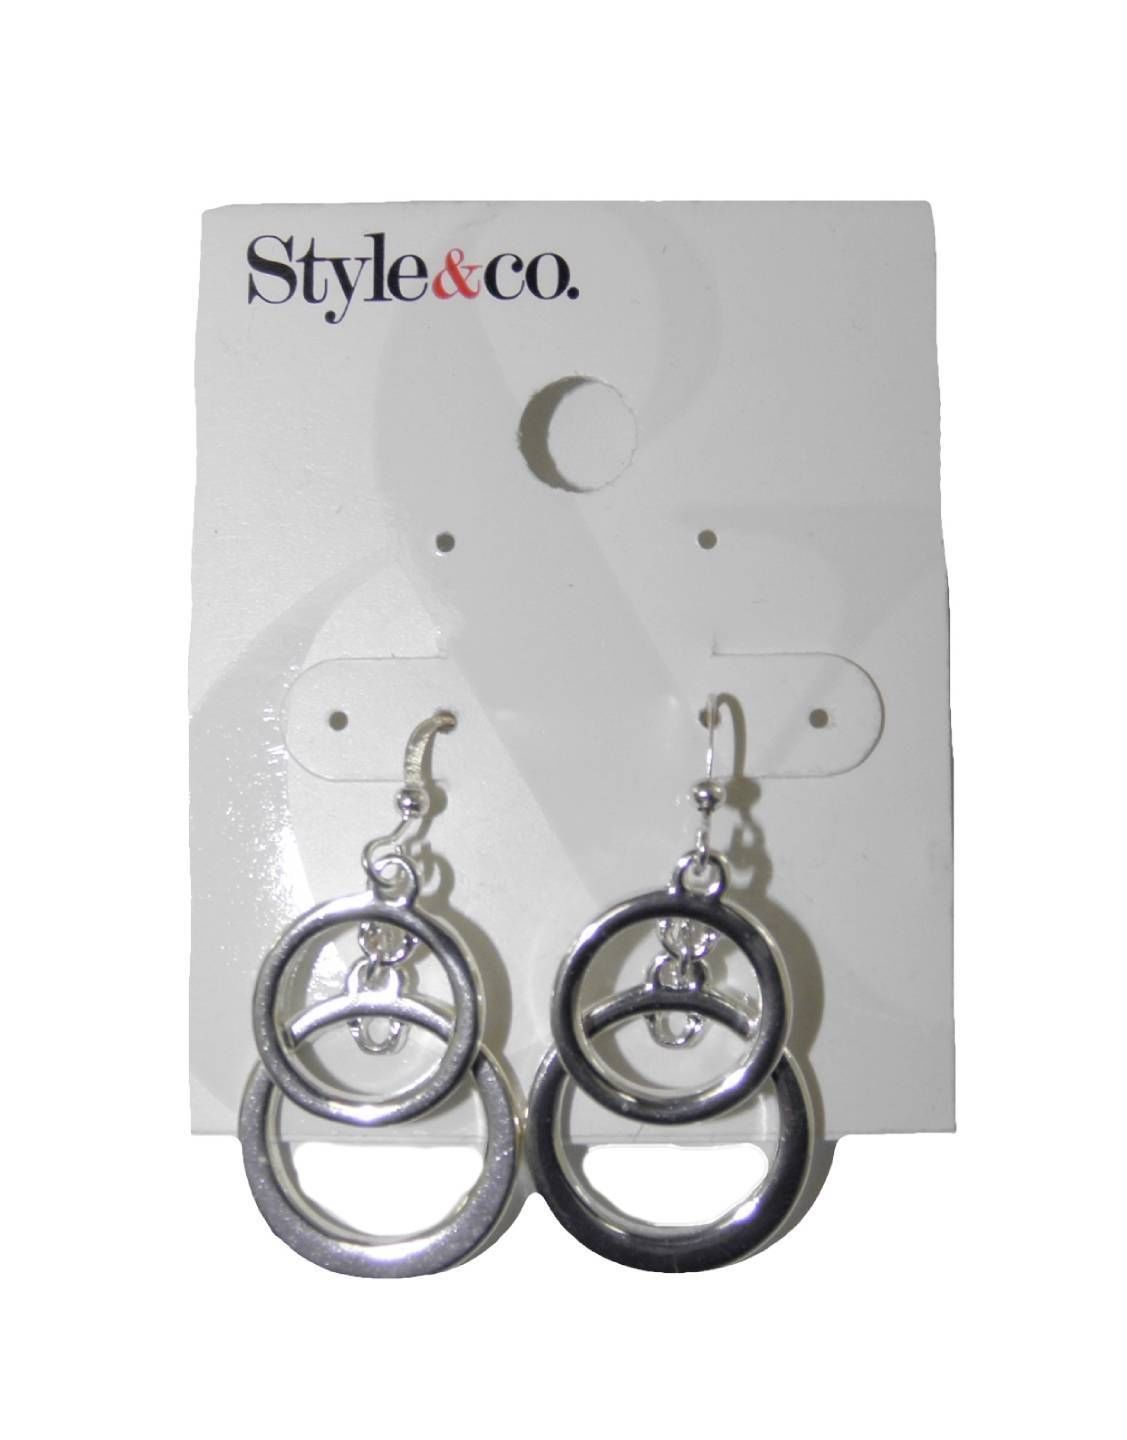 NEW STYLE & CO. DOUBLE CIRCLE DROP DANGLE EARRINGS SILVER TONED